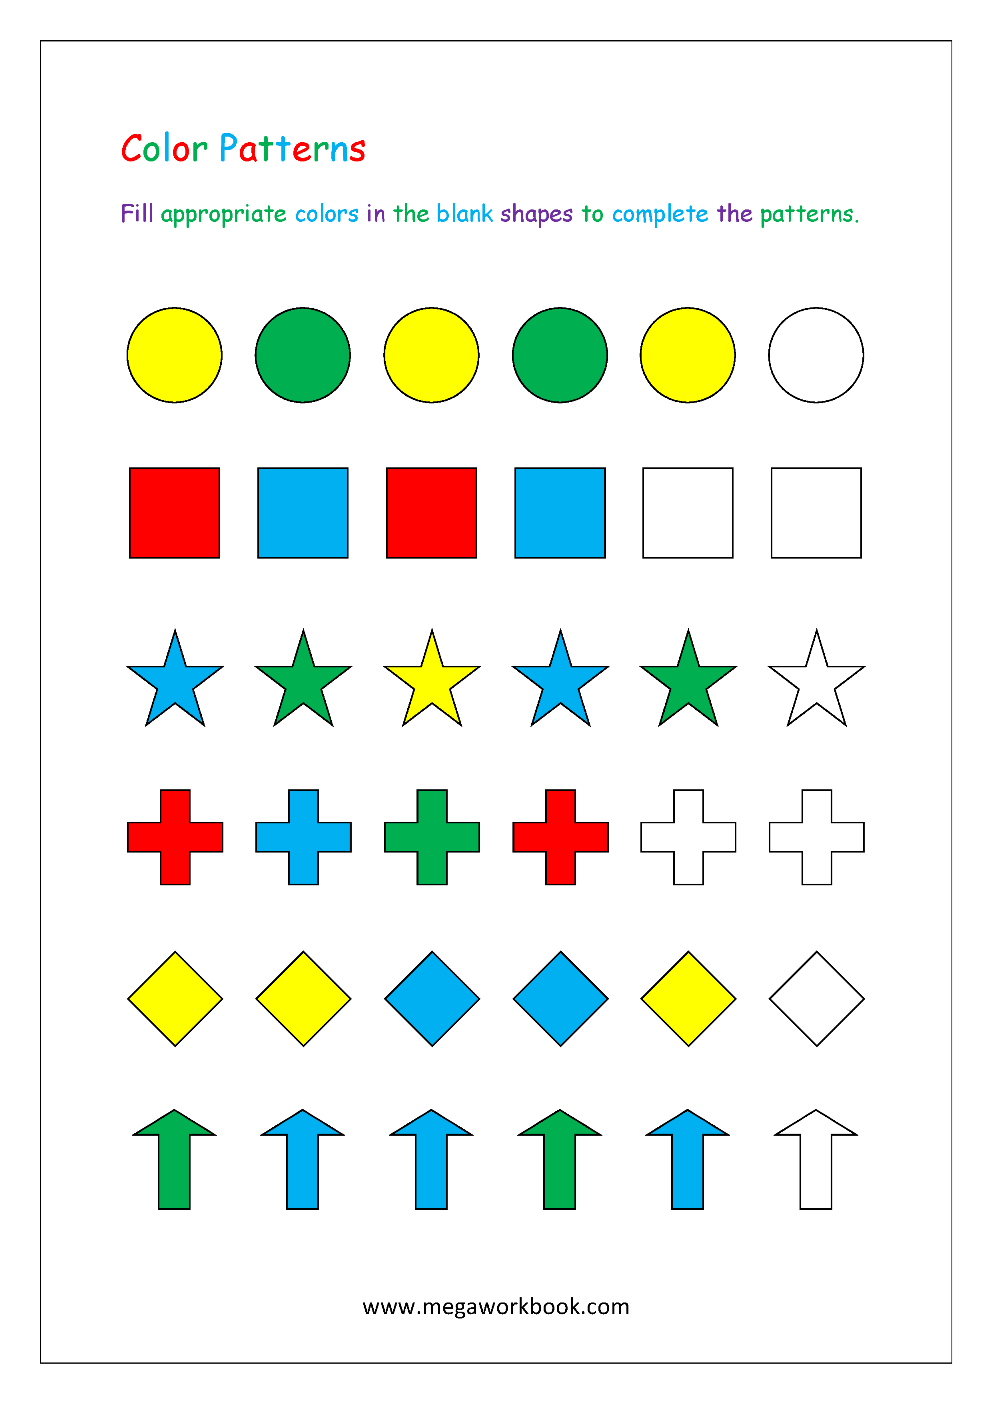 Pattern Worksheets For Kindergarten - Color Patterns ...